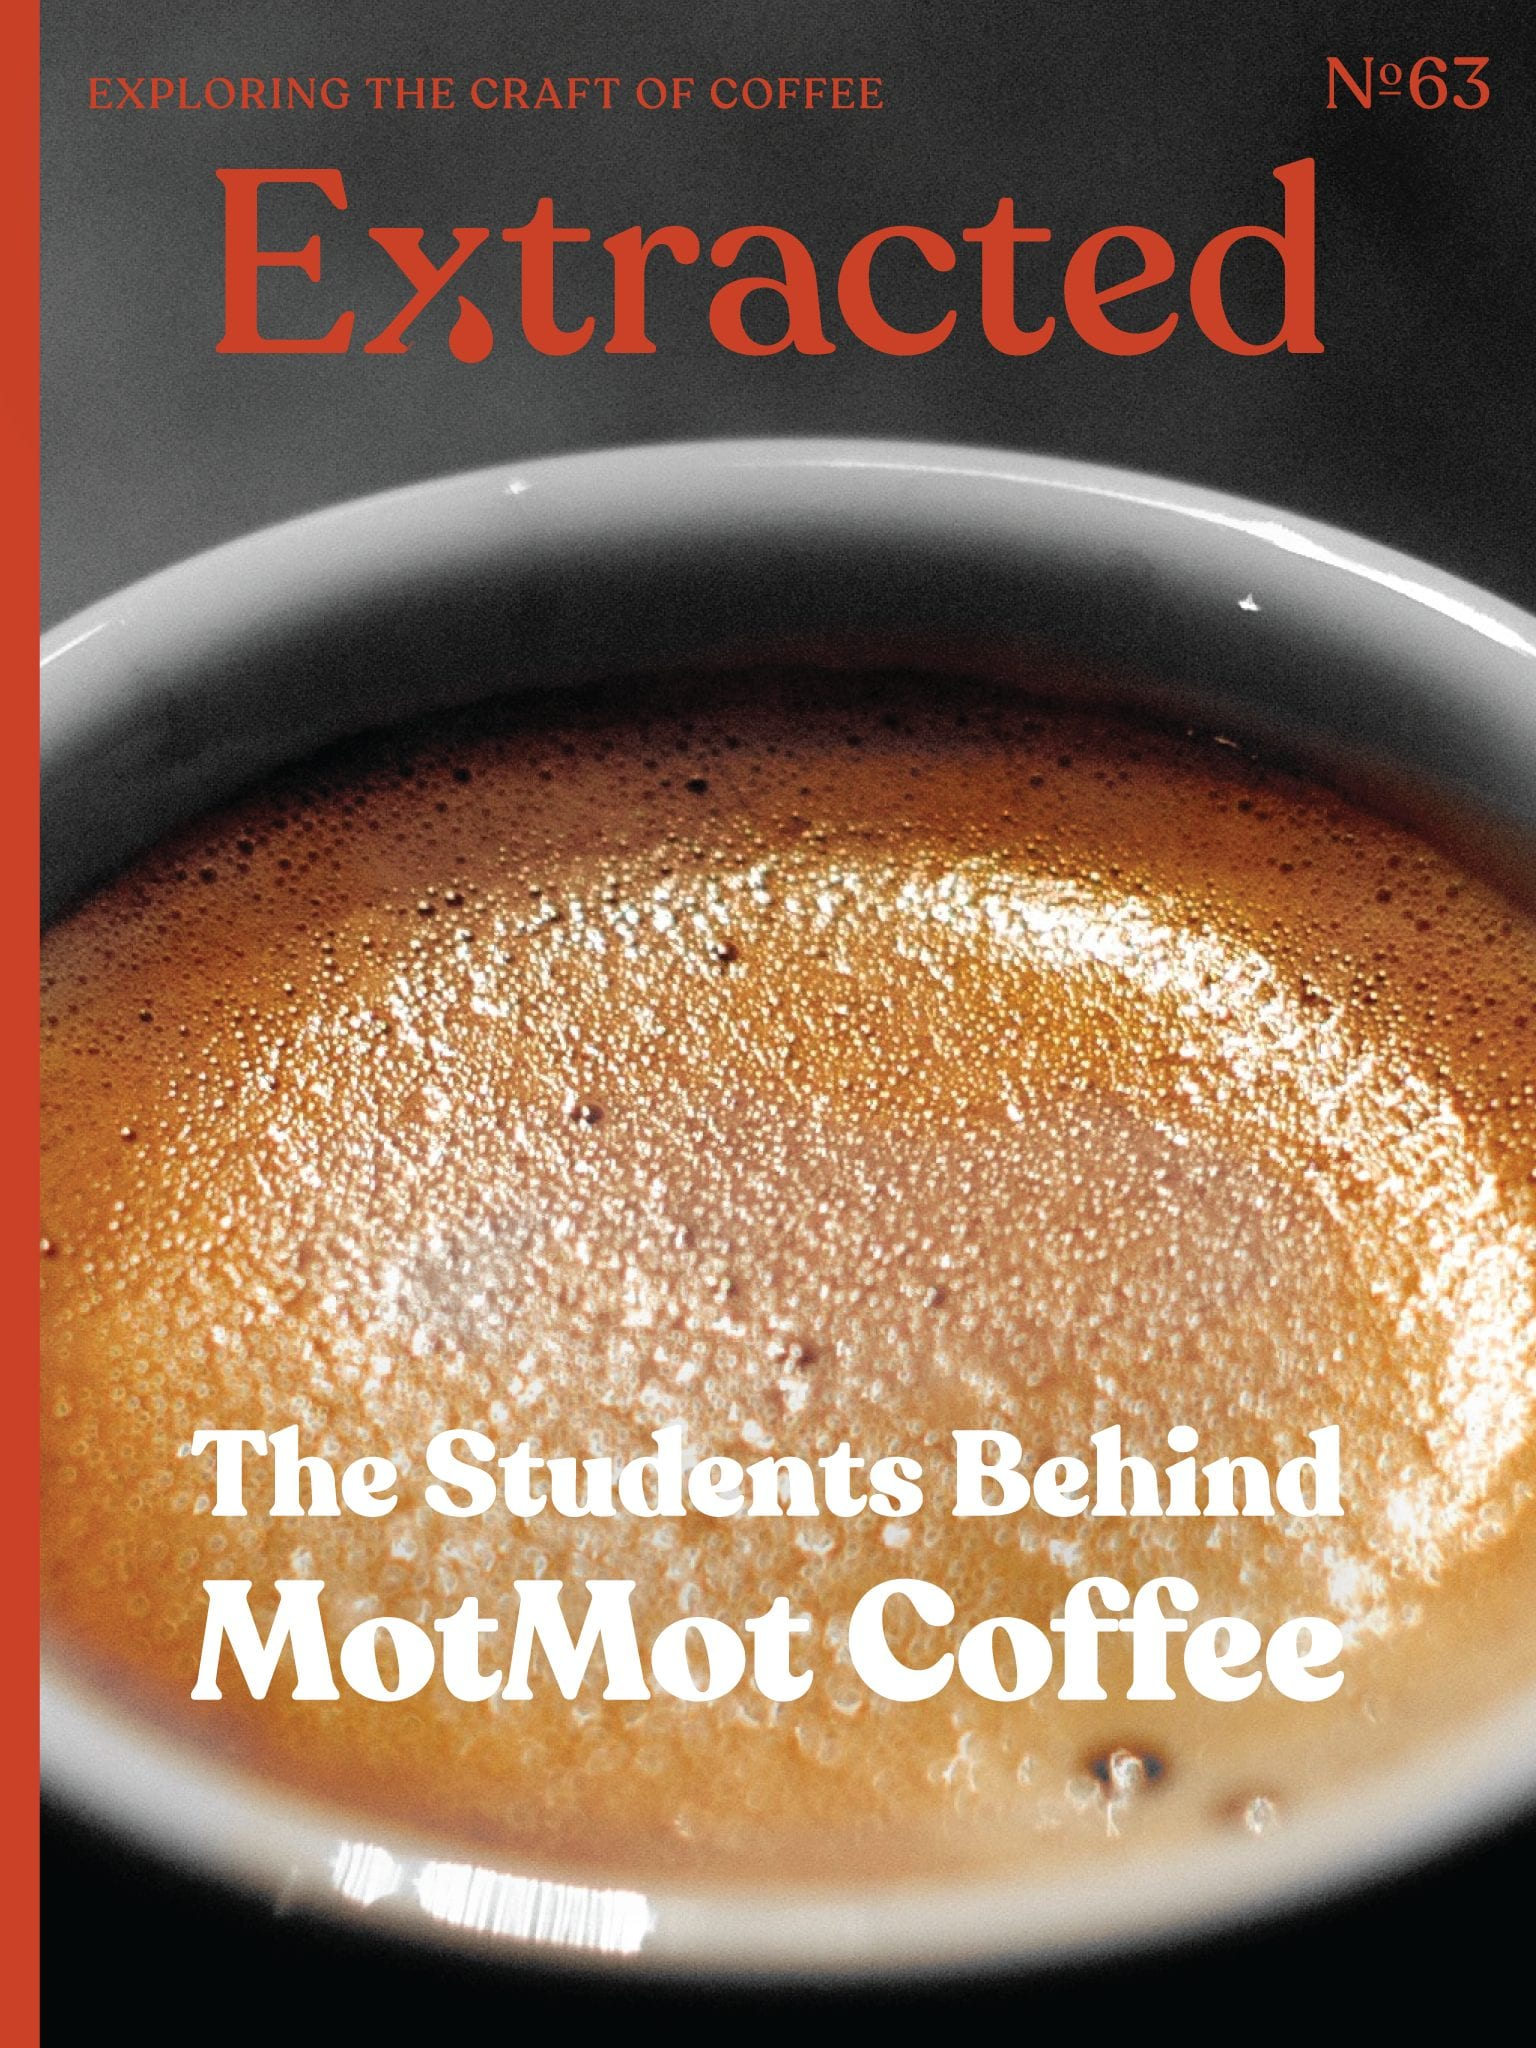 Redefining Coffee Trade - Issue 62 Extracted Magazine